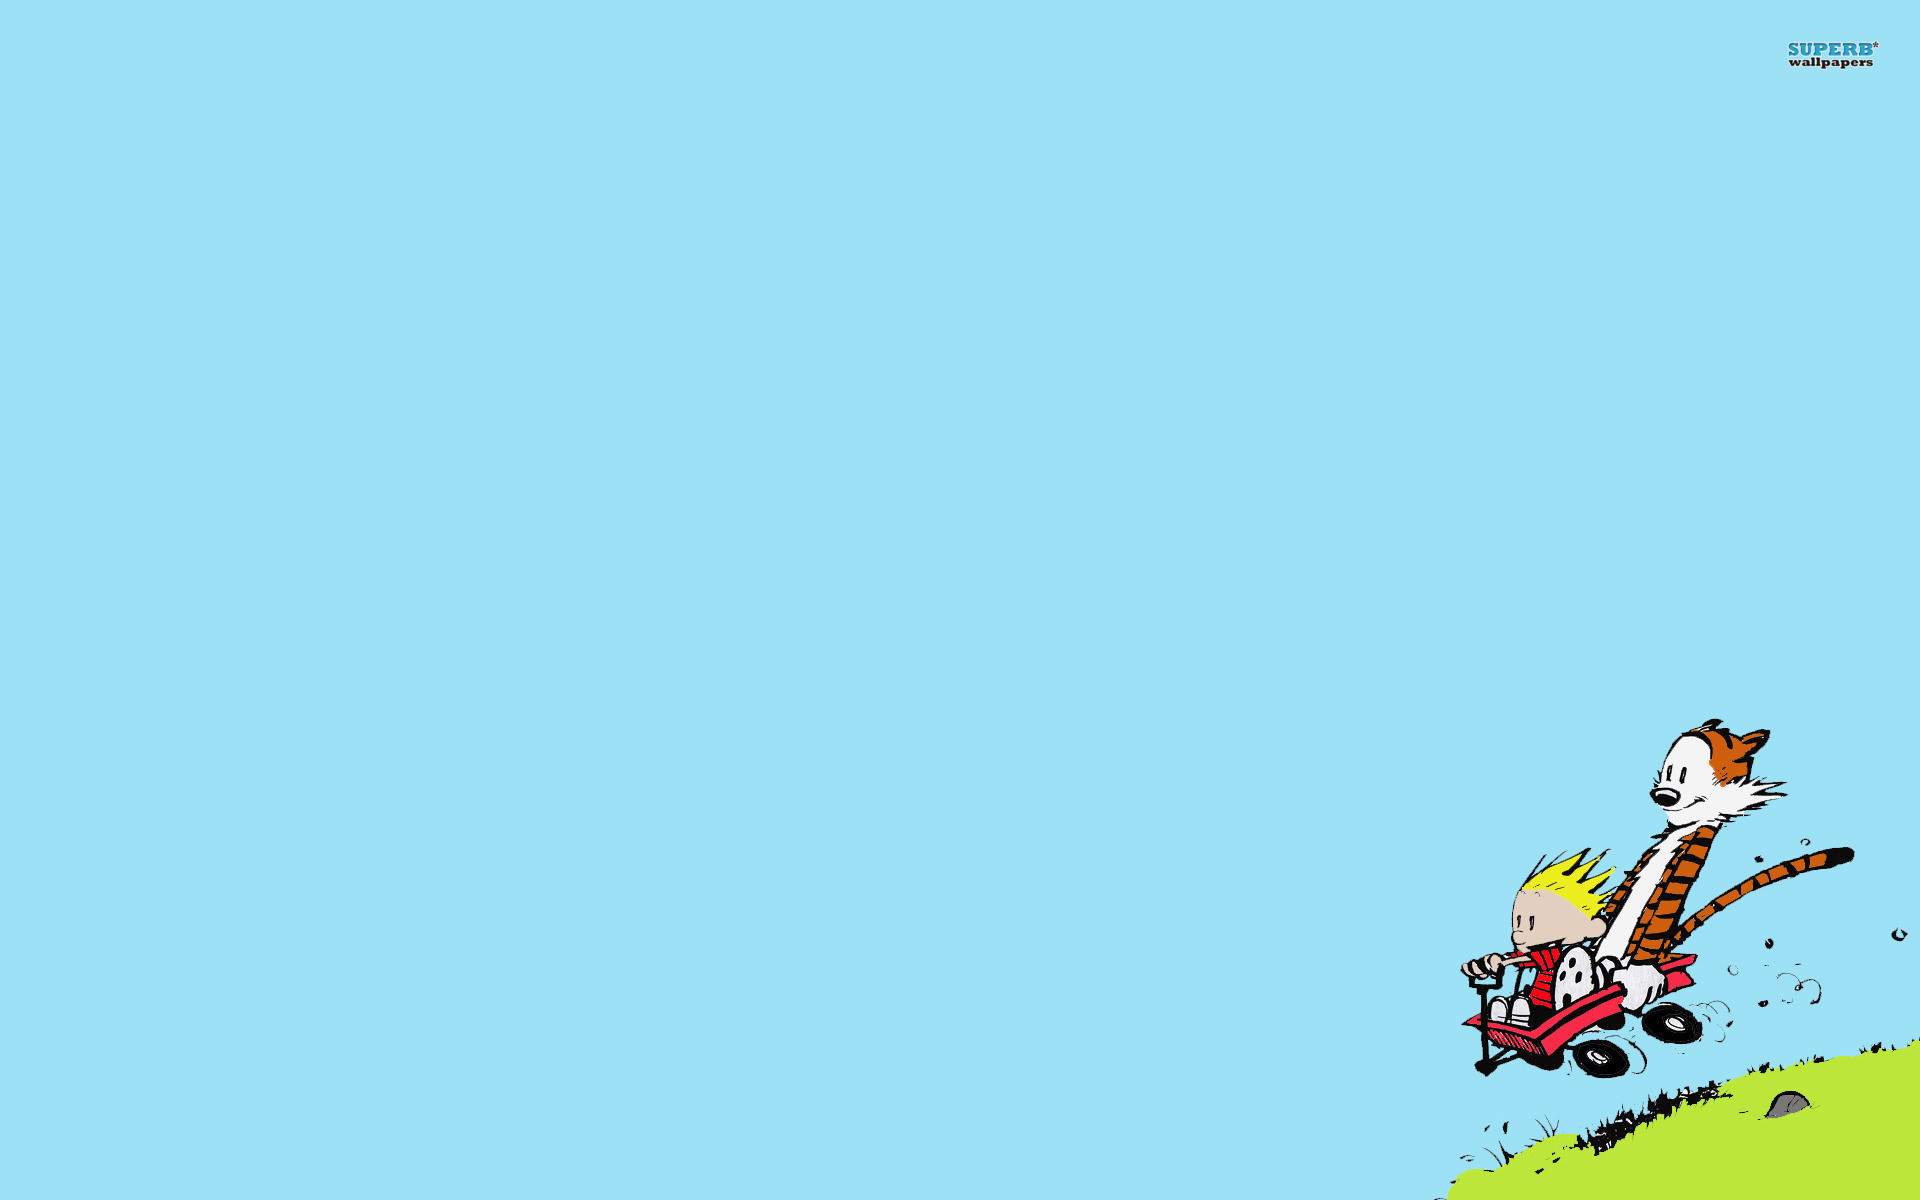 1920x1200 81 Calvin & Hobbes wallpapers optimized for 1920x1080 ...